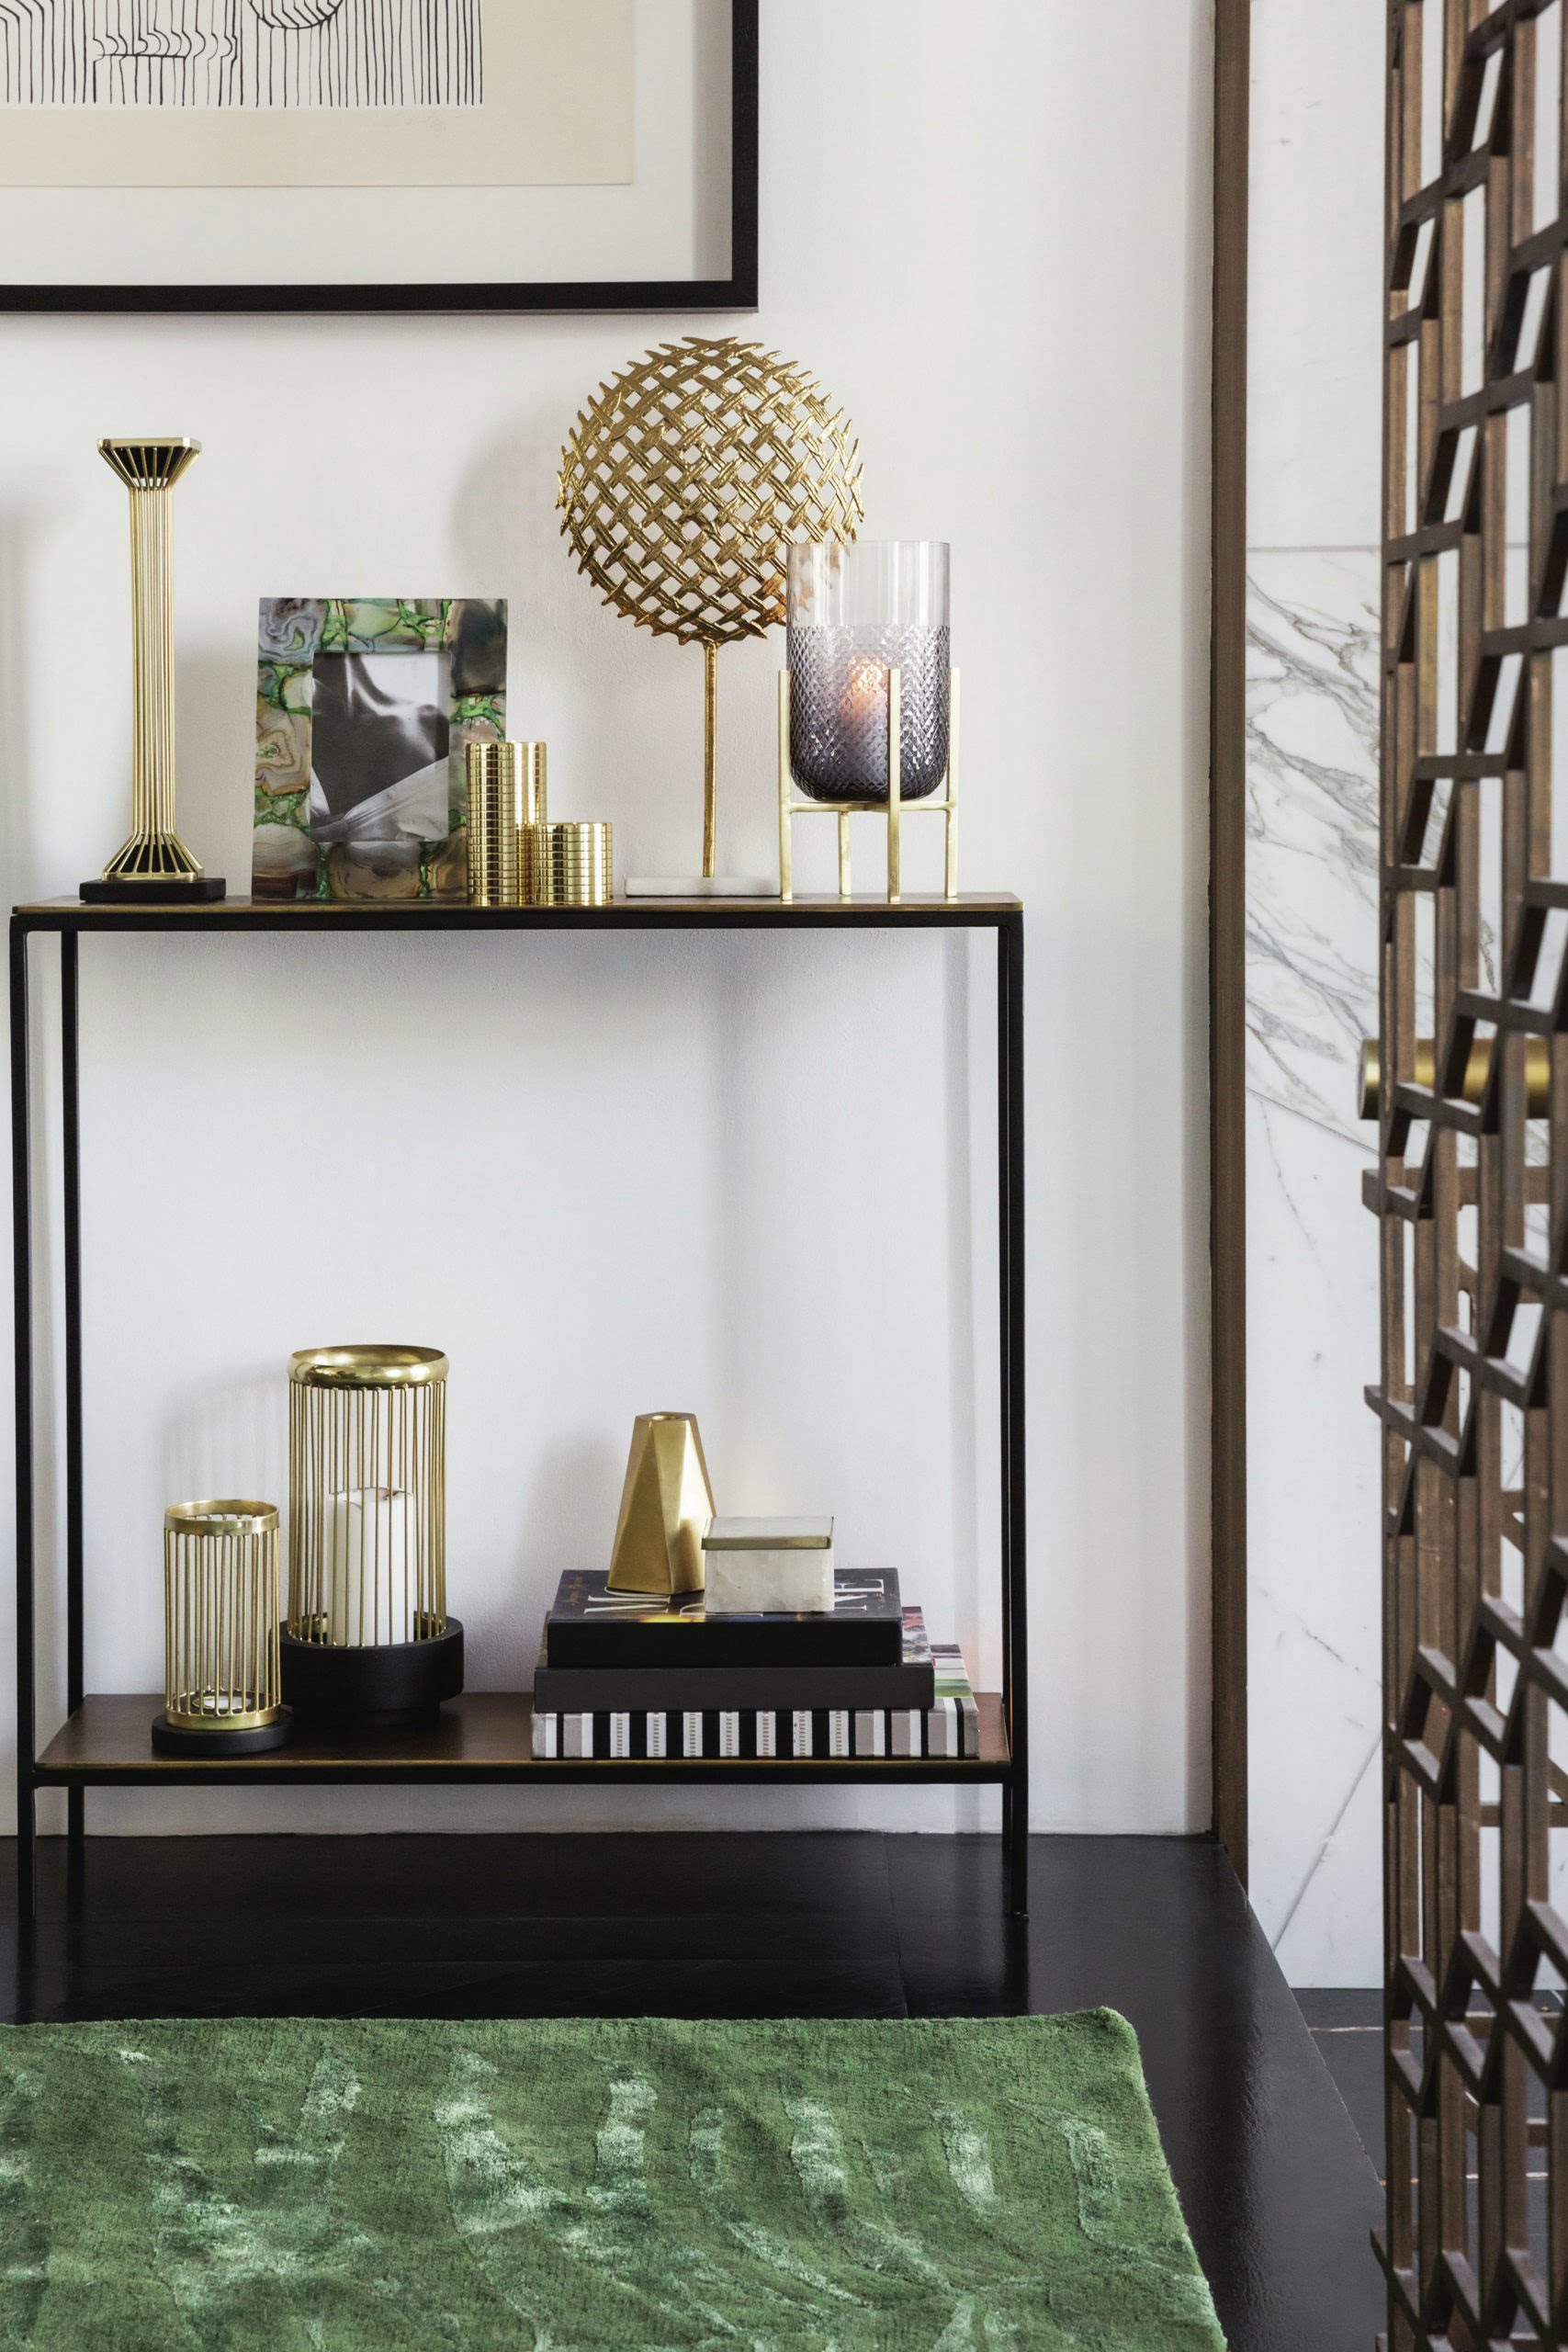 small shelving unit with gold accessories and candles